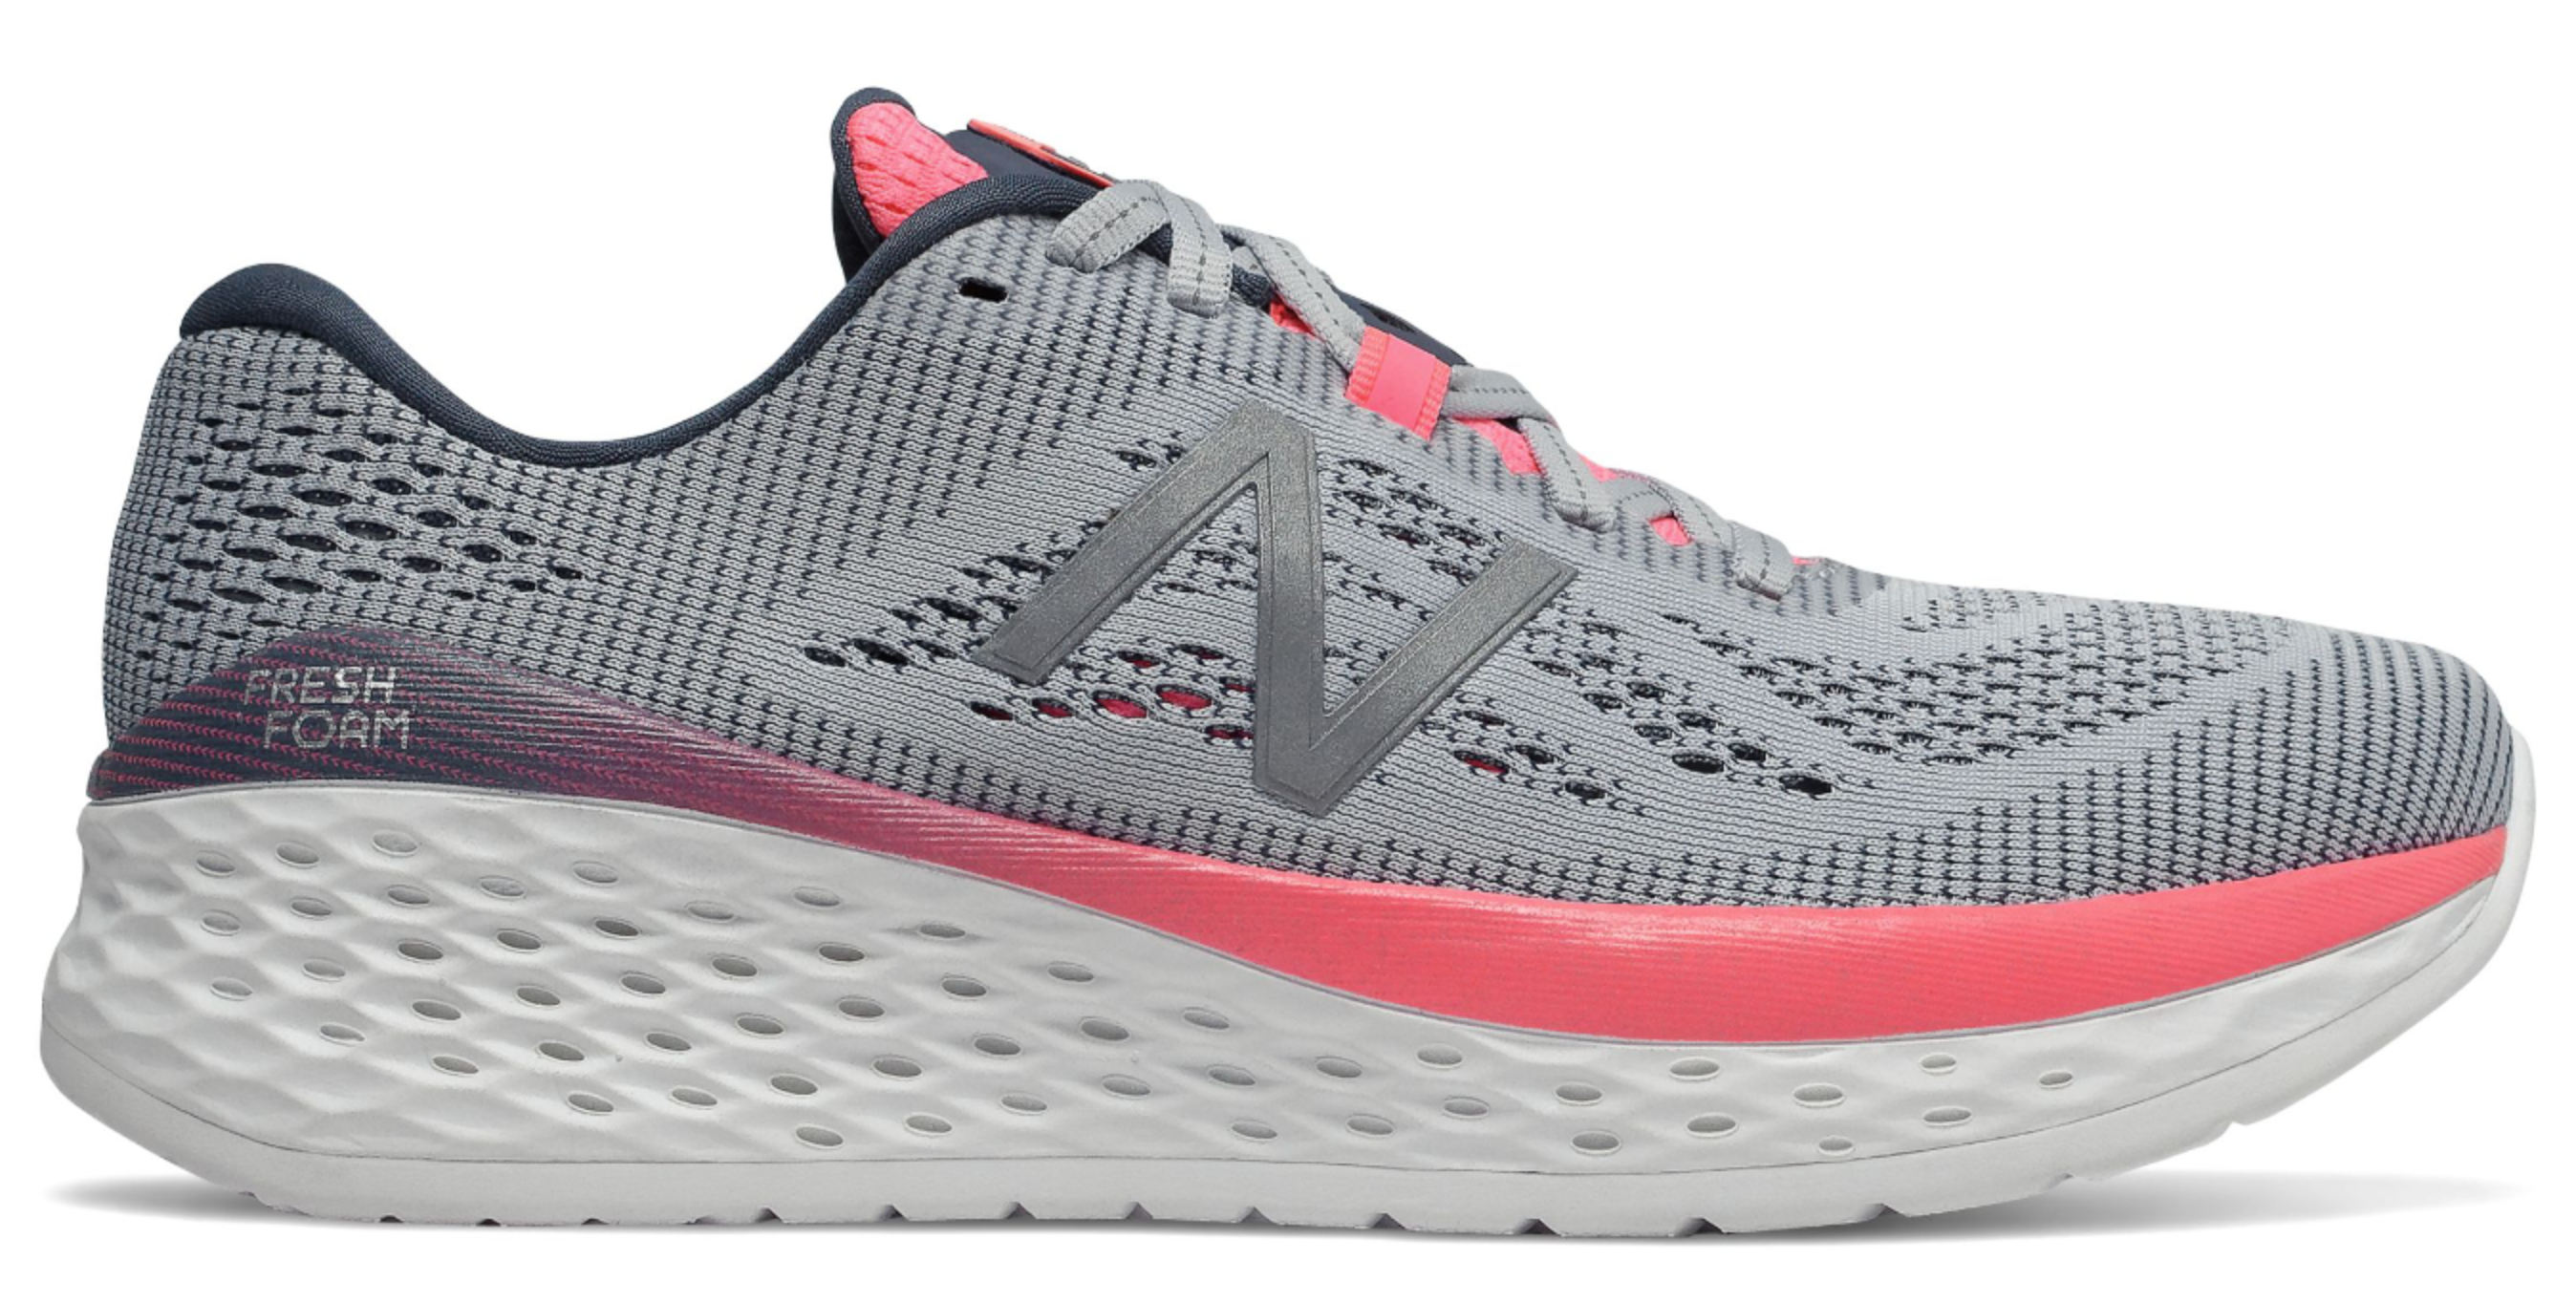 New Balance Fresh Foam More - Women's